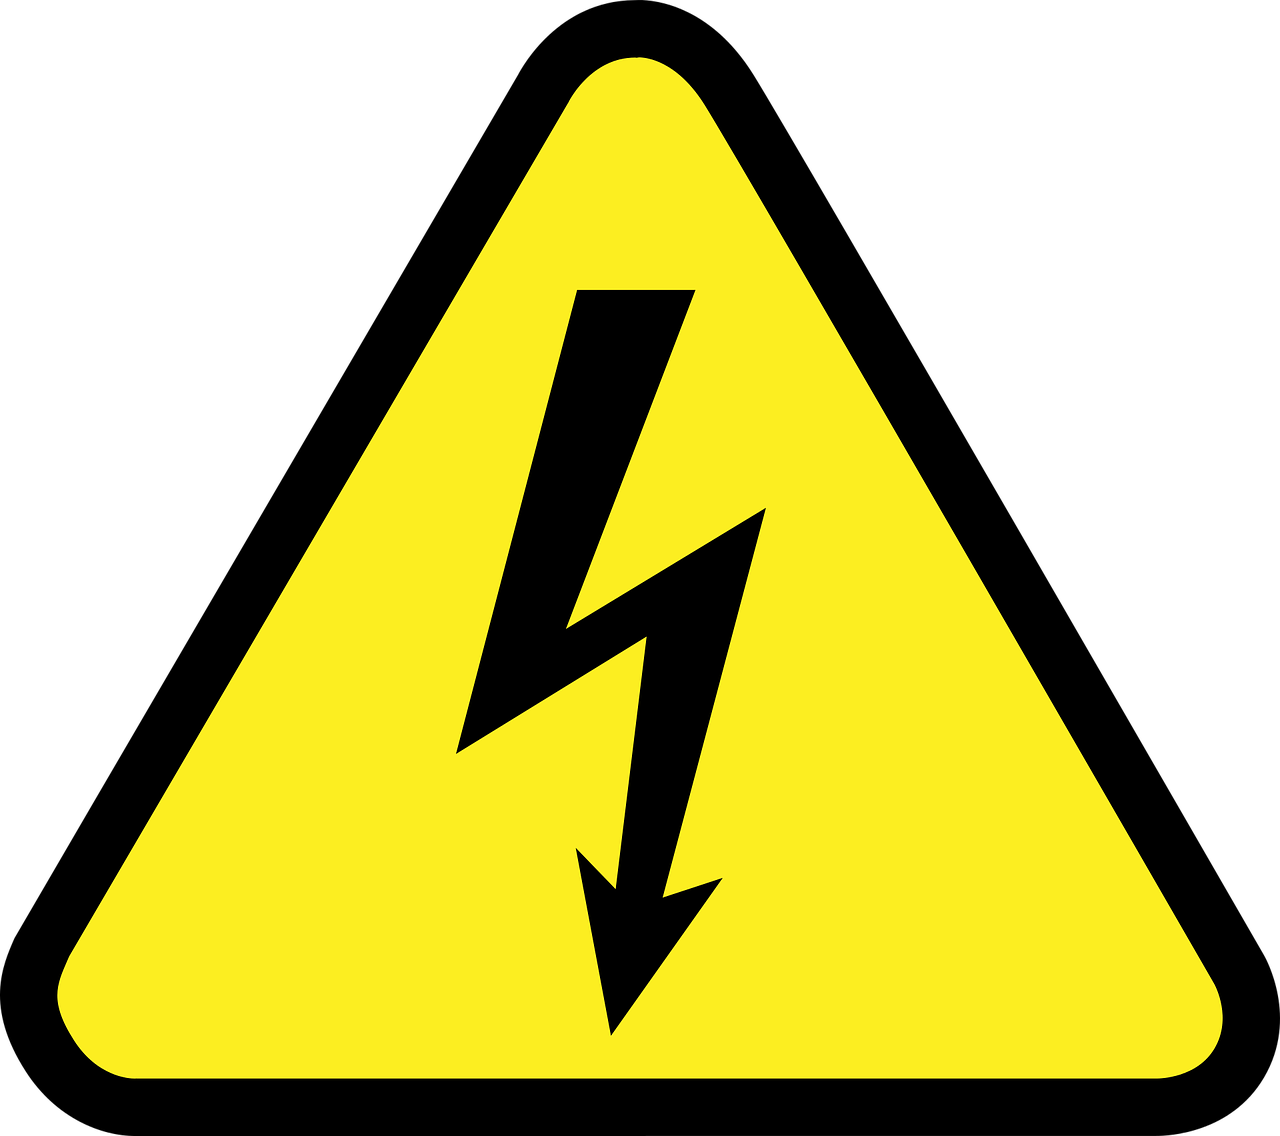 Electrical Safety in the Home: Five Important Rules